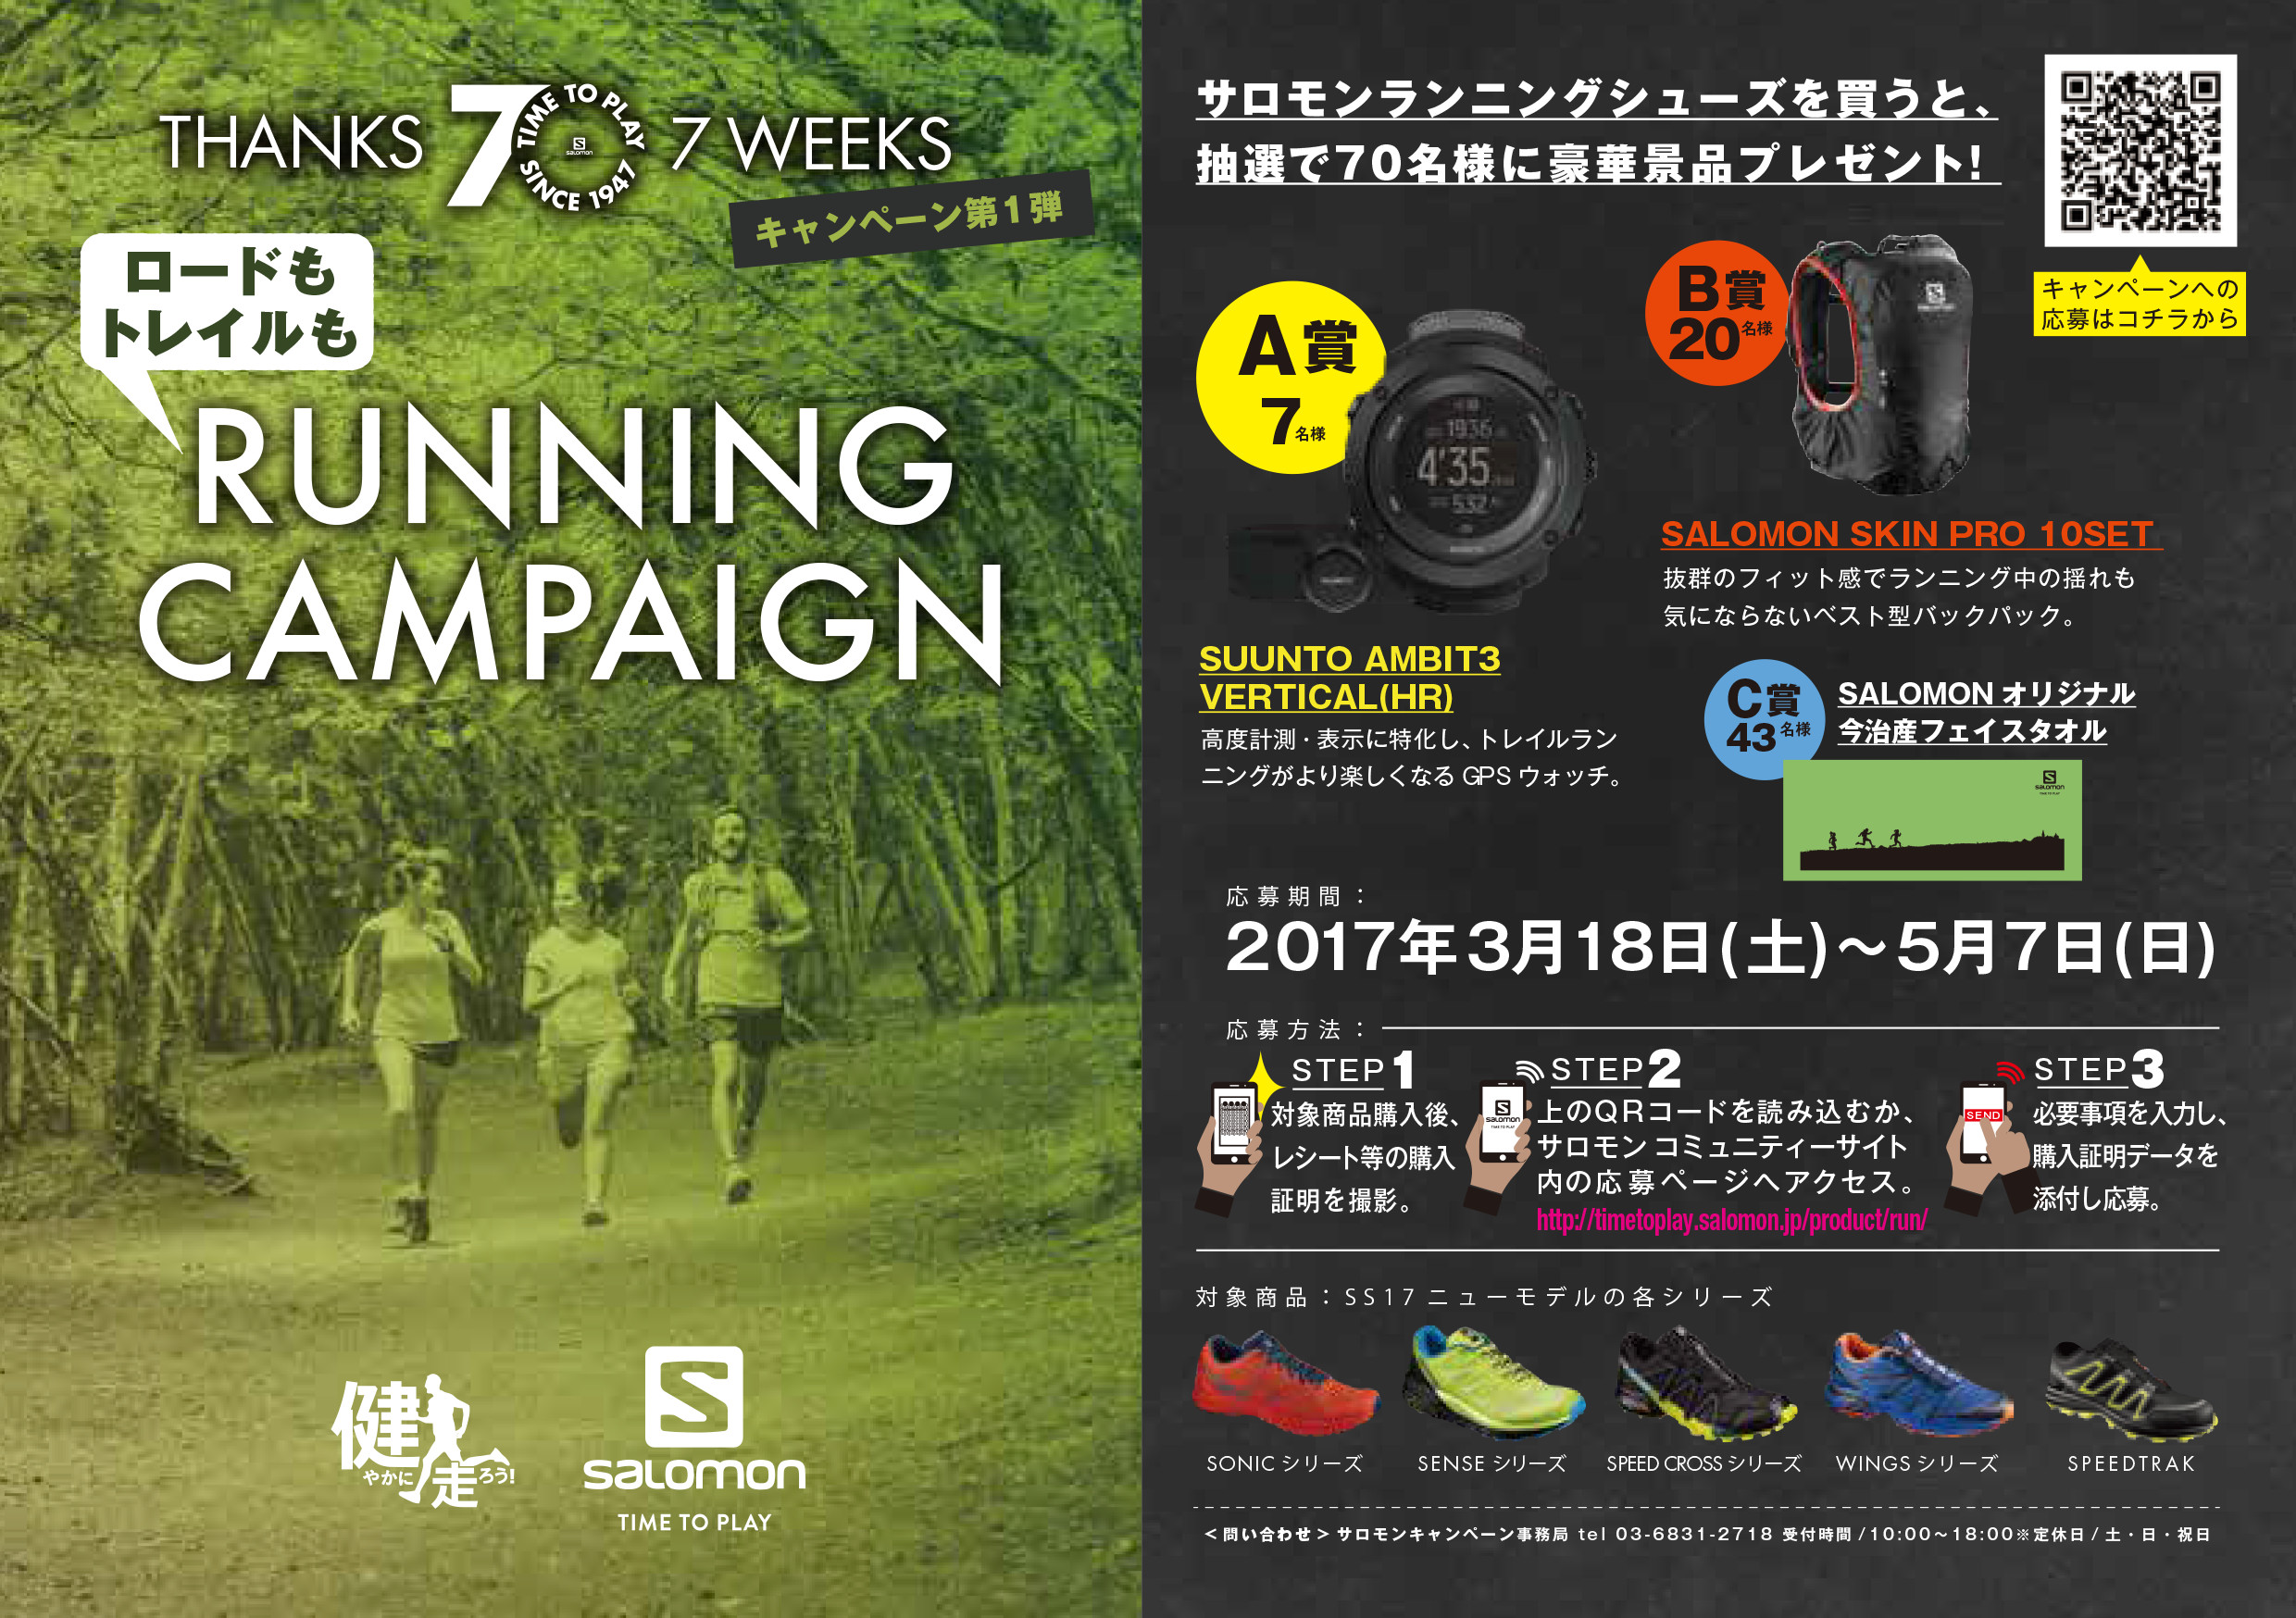 RUNNING CAMPAIGN